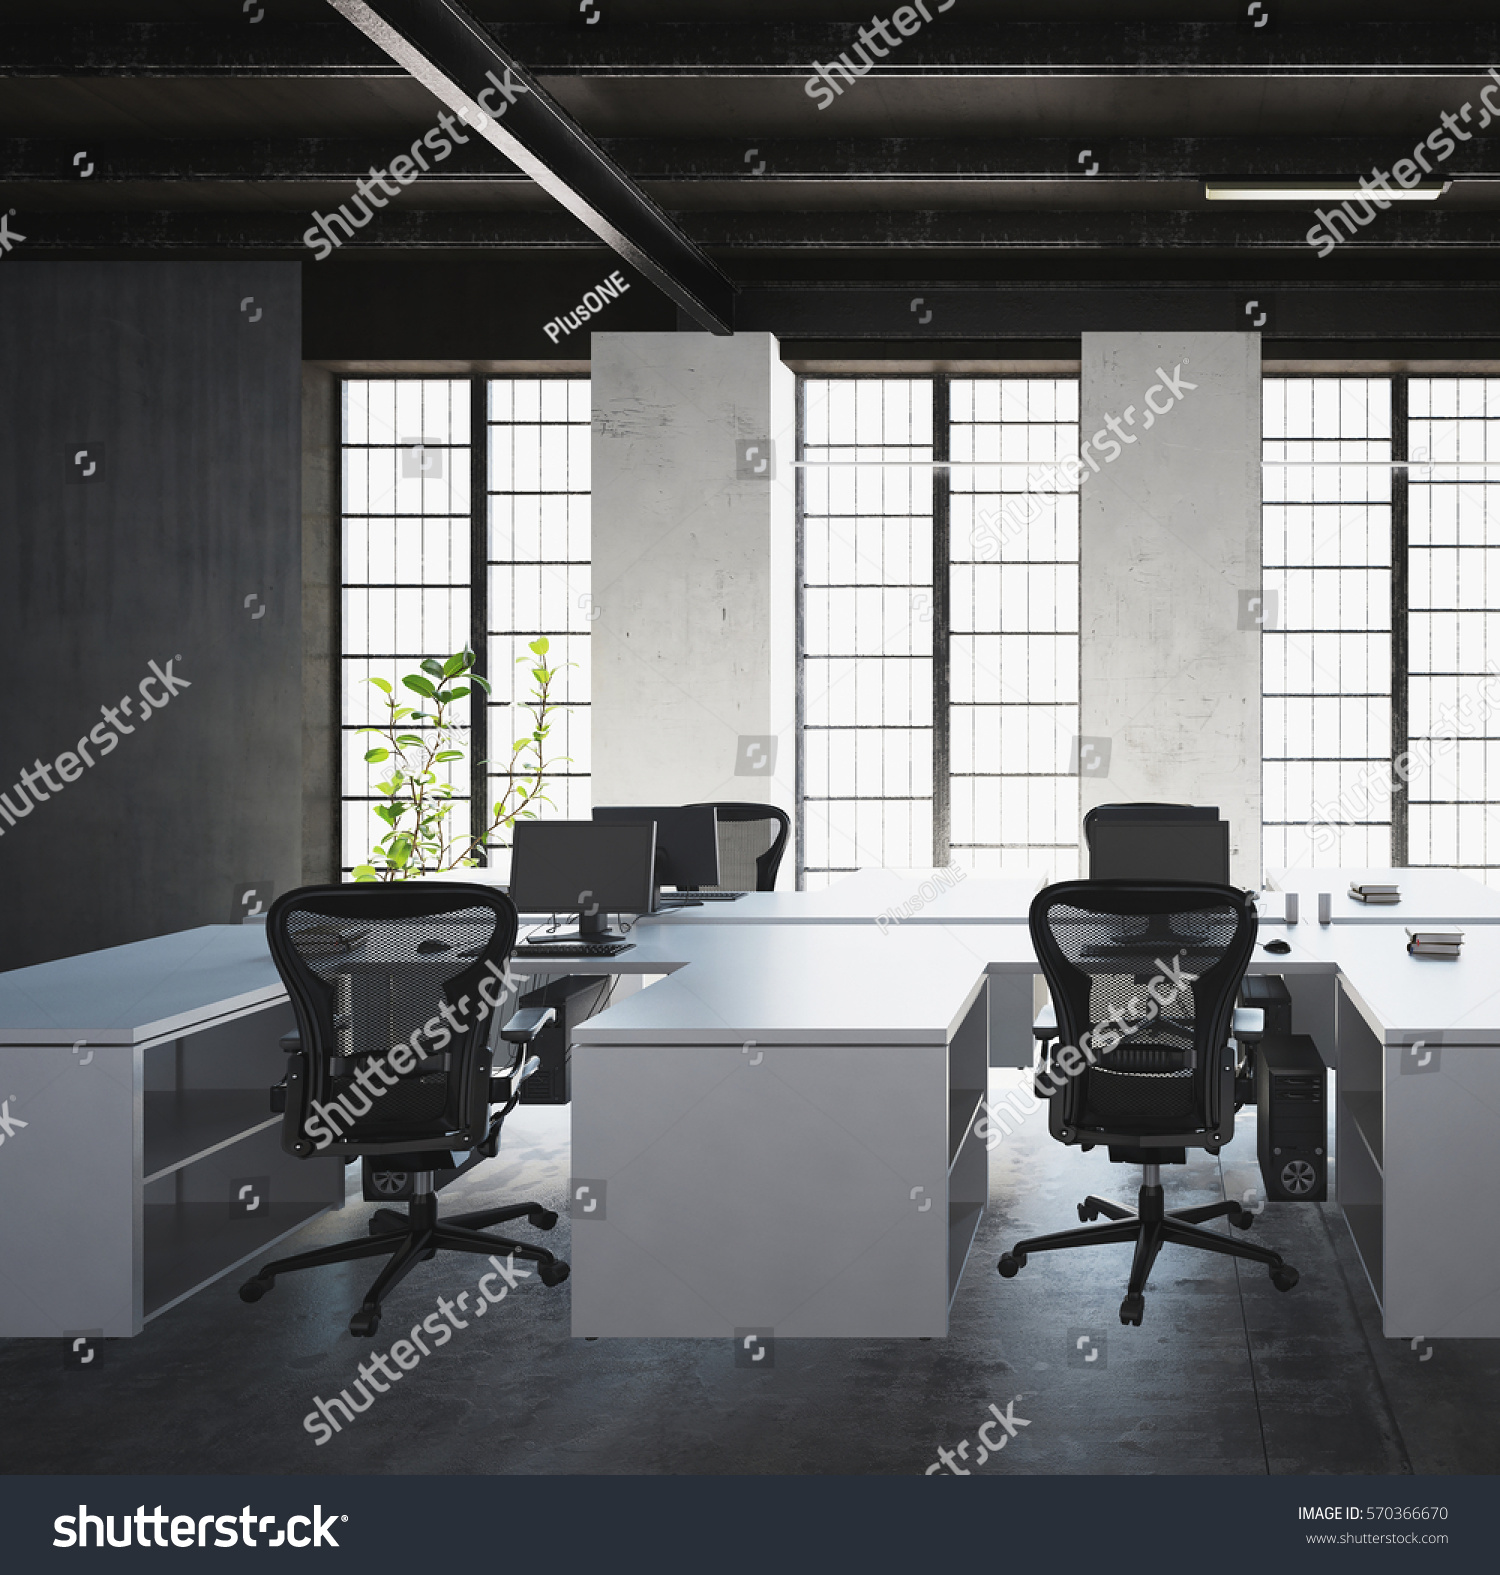 White desks with monitors and plastic armchairs against big light windows  in modern office space interior. White Desks Monitors Plastic Armchairs Against Stock Illustration